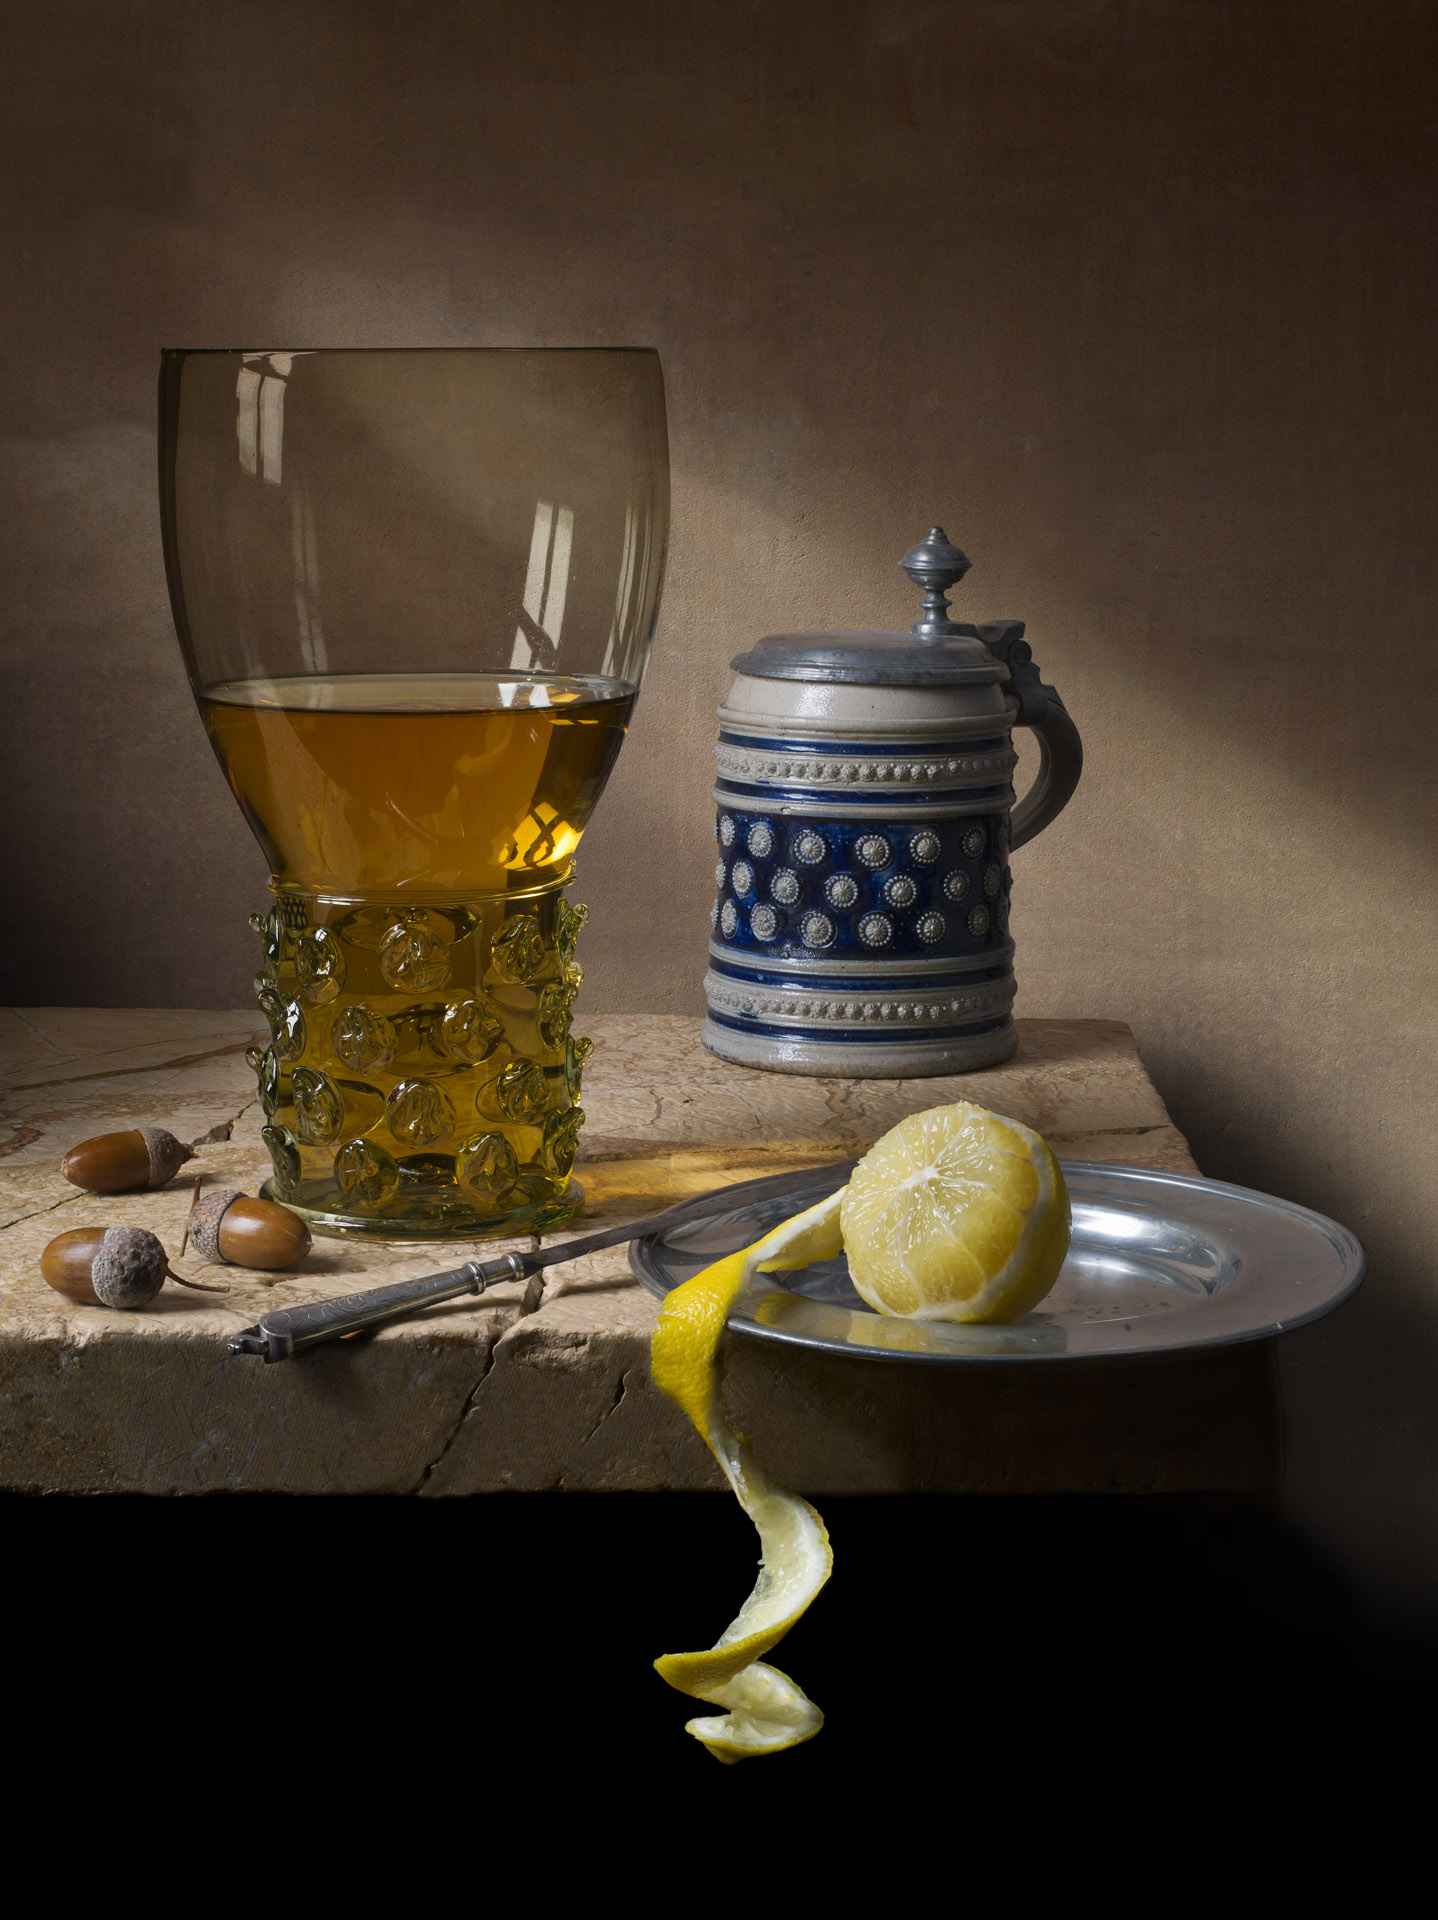 Still life with roemer and stein